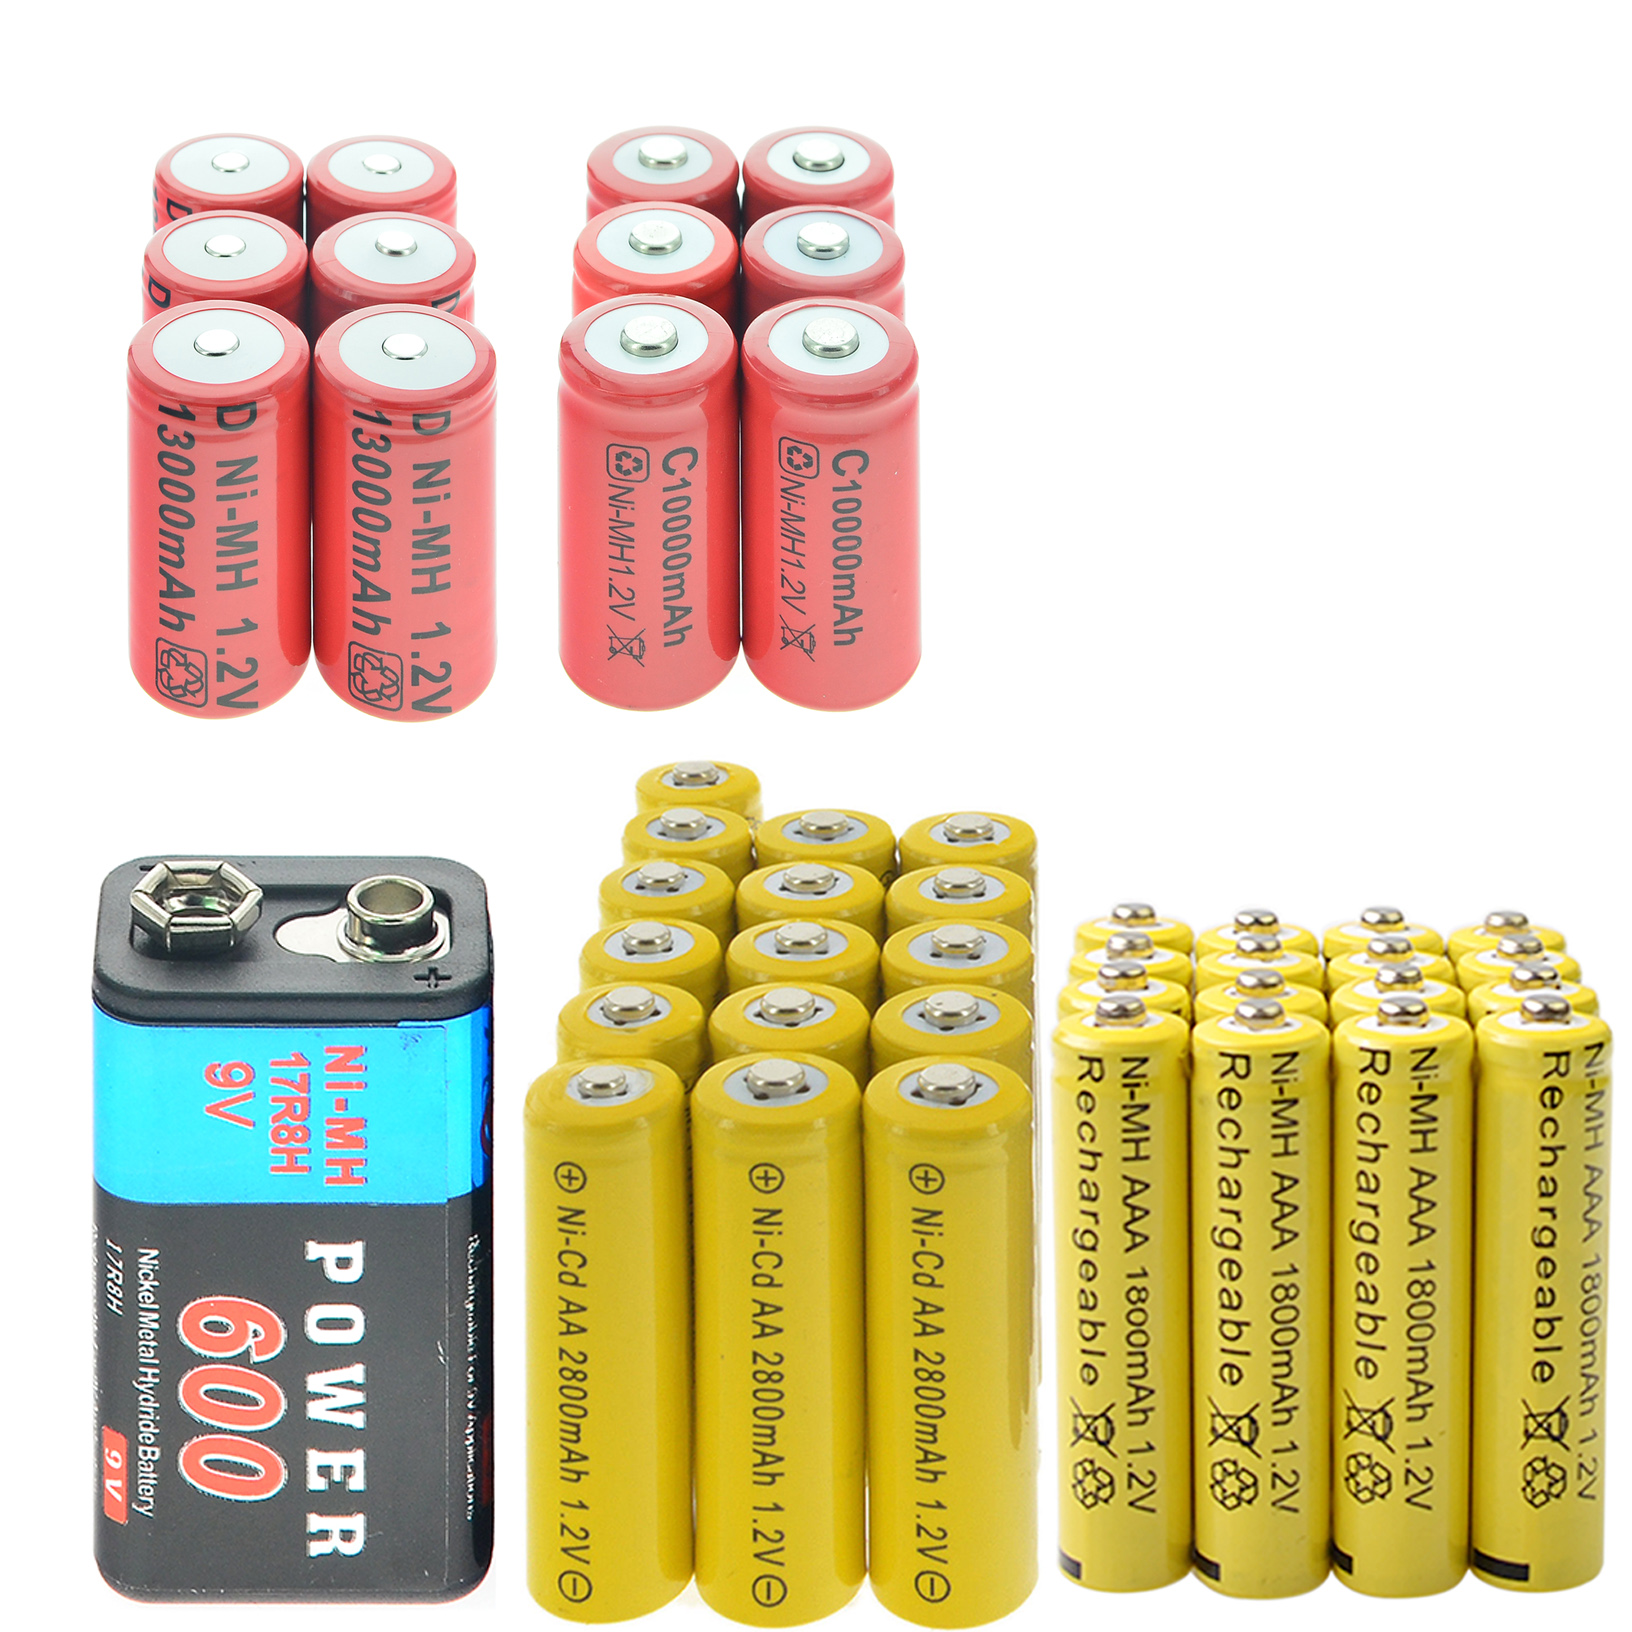 16x AA 2800 mAh + 16x AAA 1800 mAh + 1x9 V 600 mAh batterie + 6x D taille + 6x C taille batterie rechargeable jaune rouge